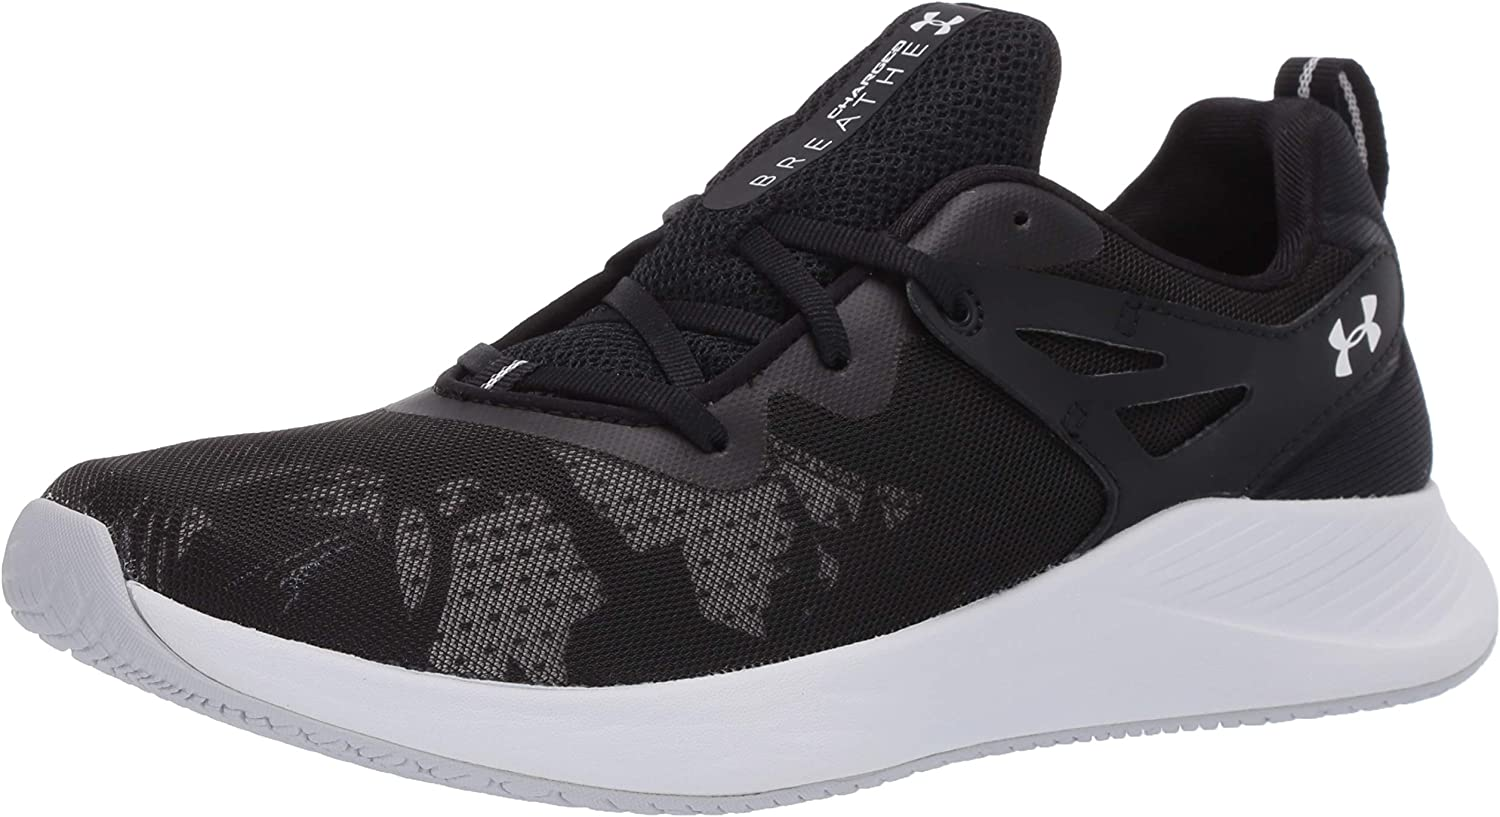 Under Armour Women's Charged Breathe Tr 2.0 Cross Trainer